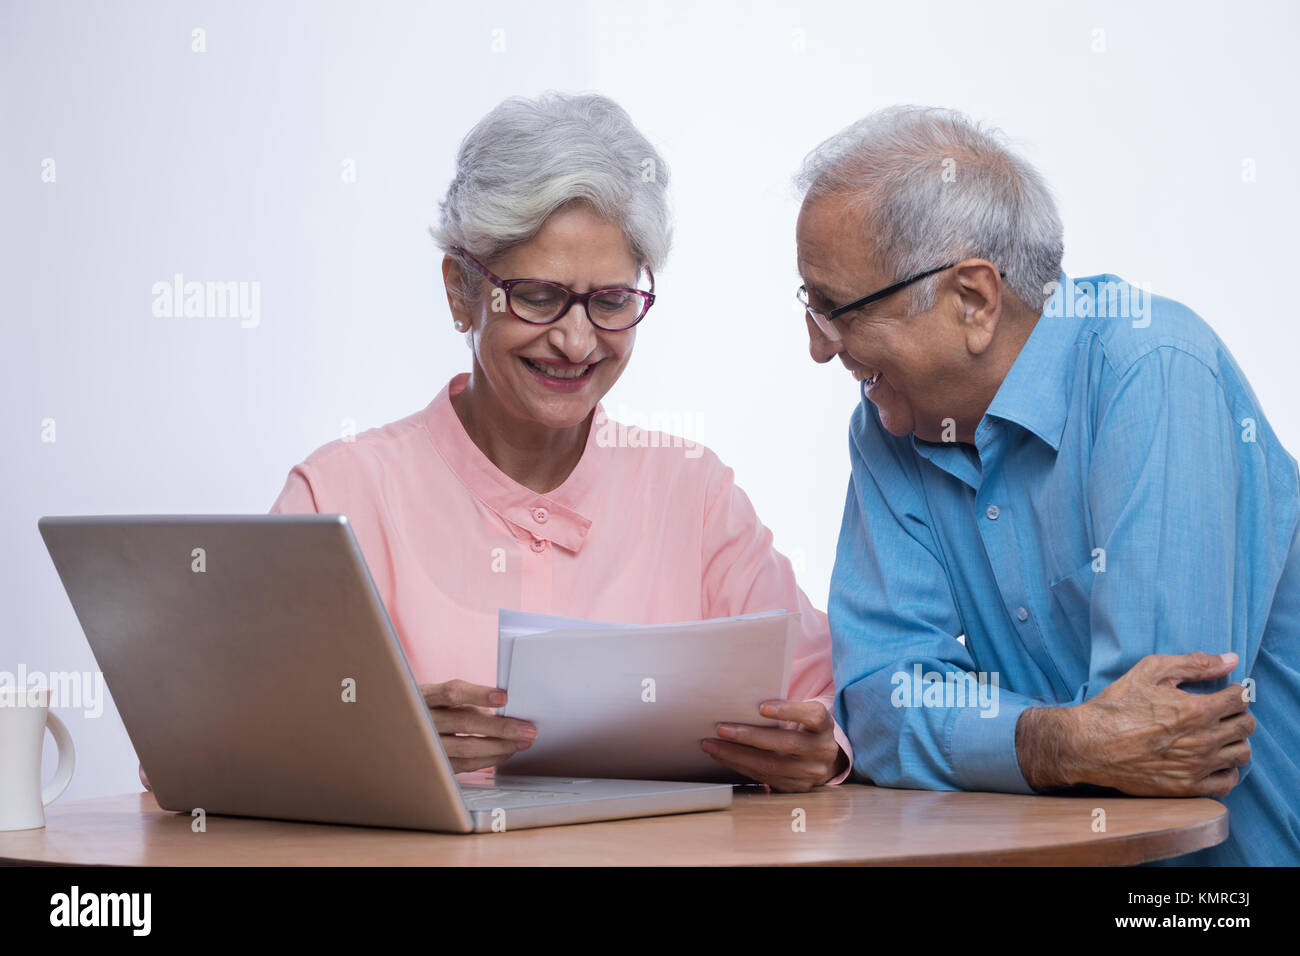 Senior couple using laptop and looking at documents sitting on table - Stock Image